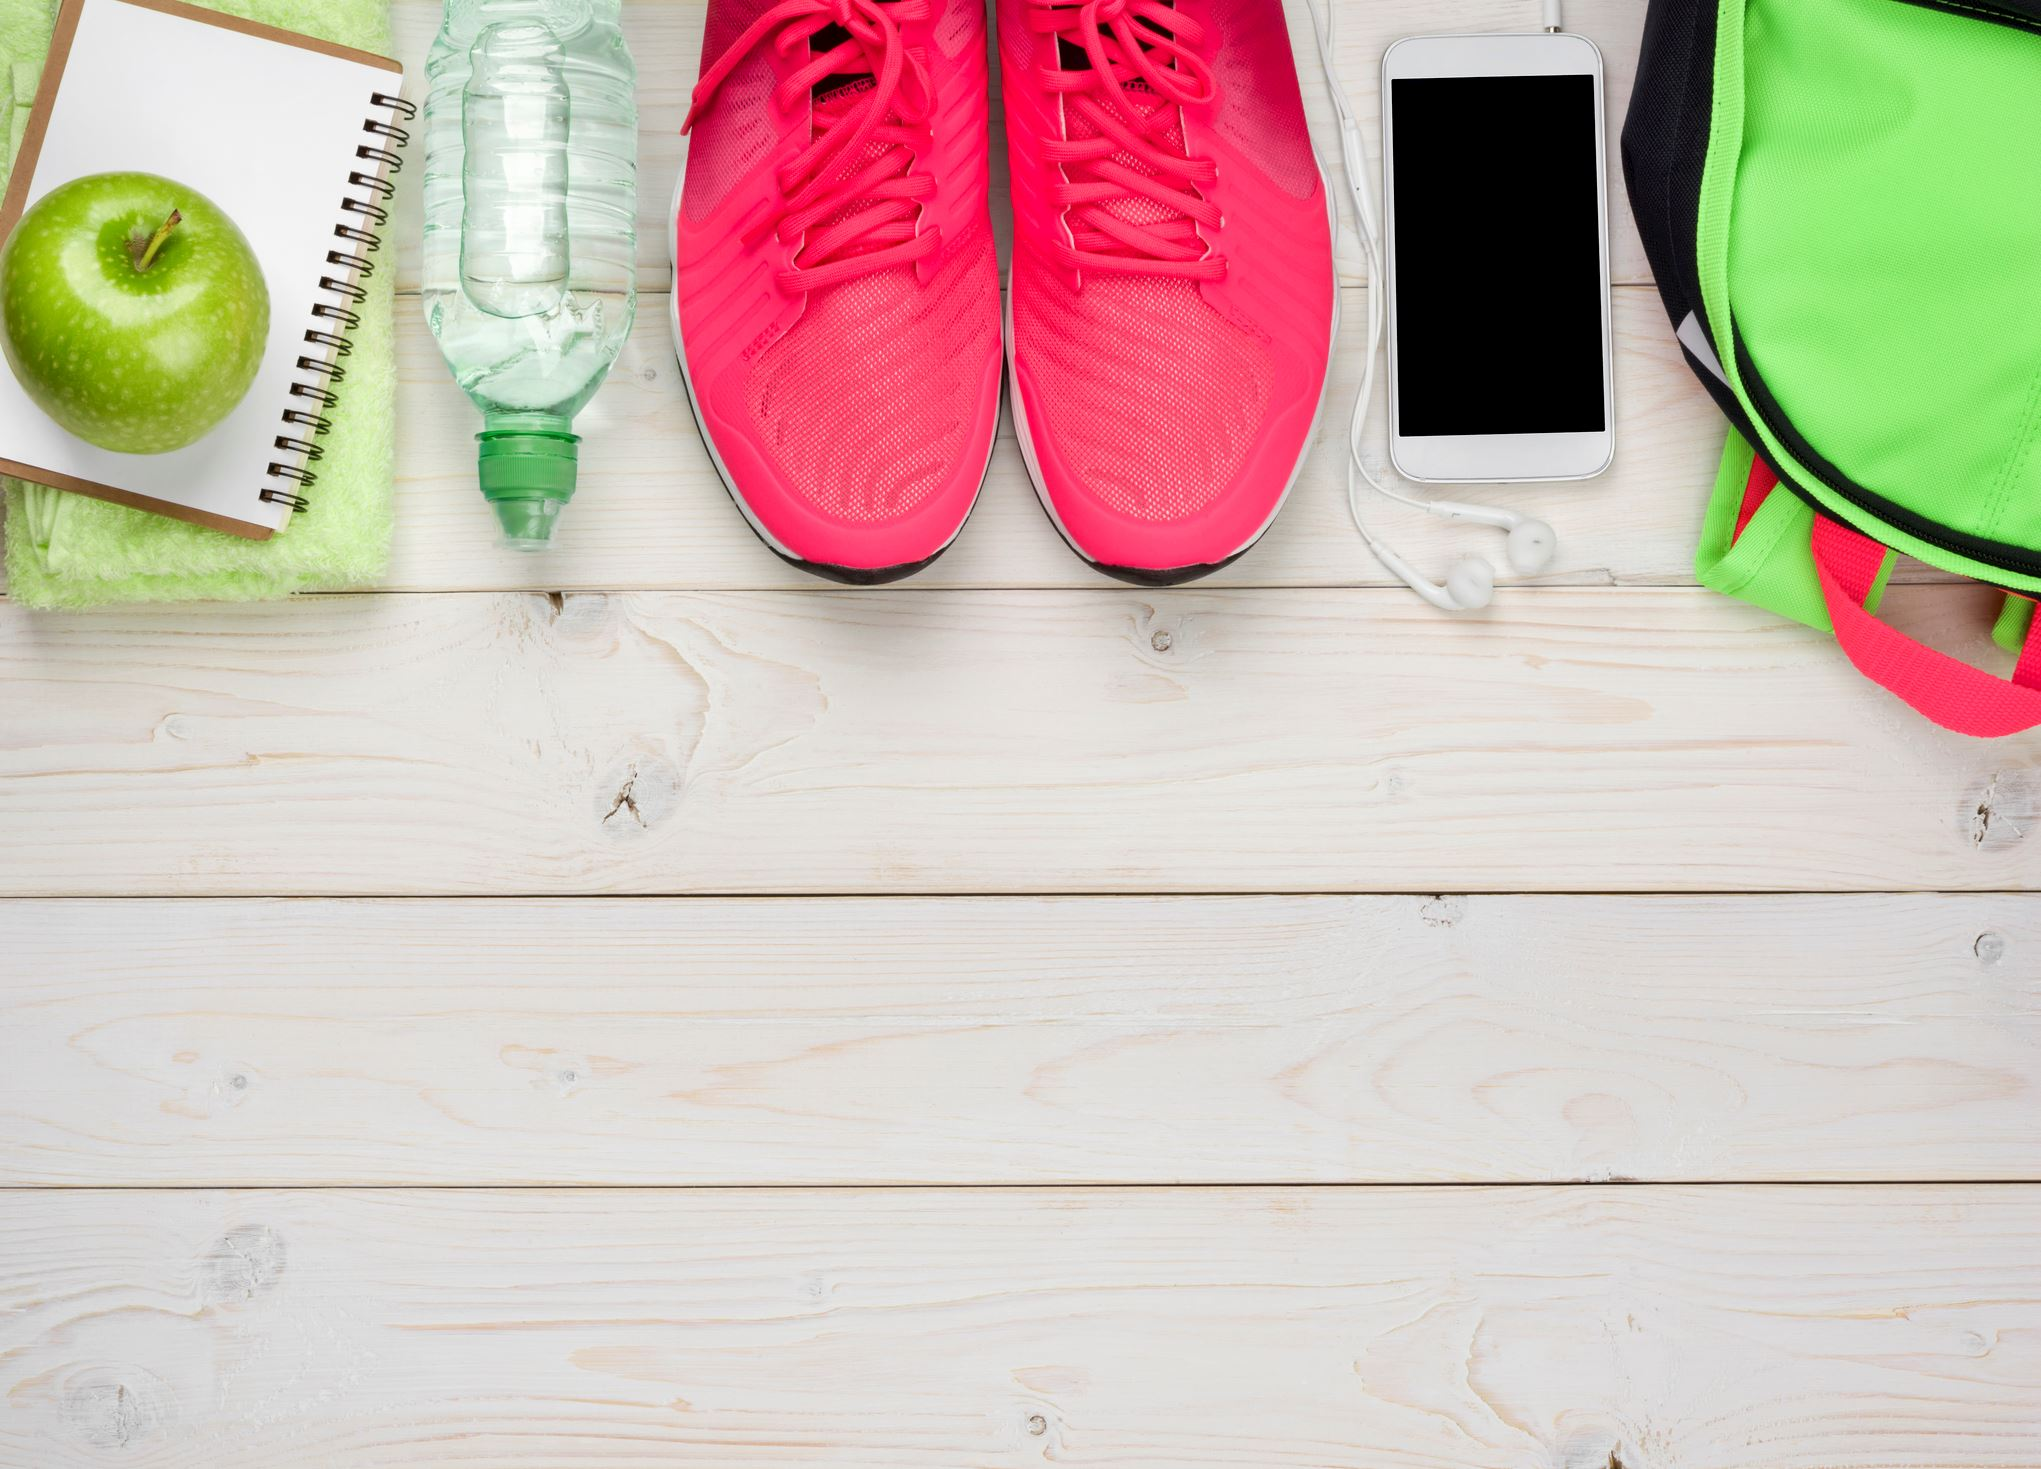 Main Running Gear and Accessories That are a Must For Marathon Running!